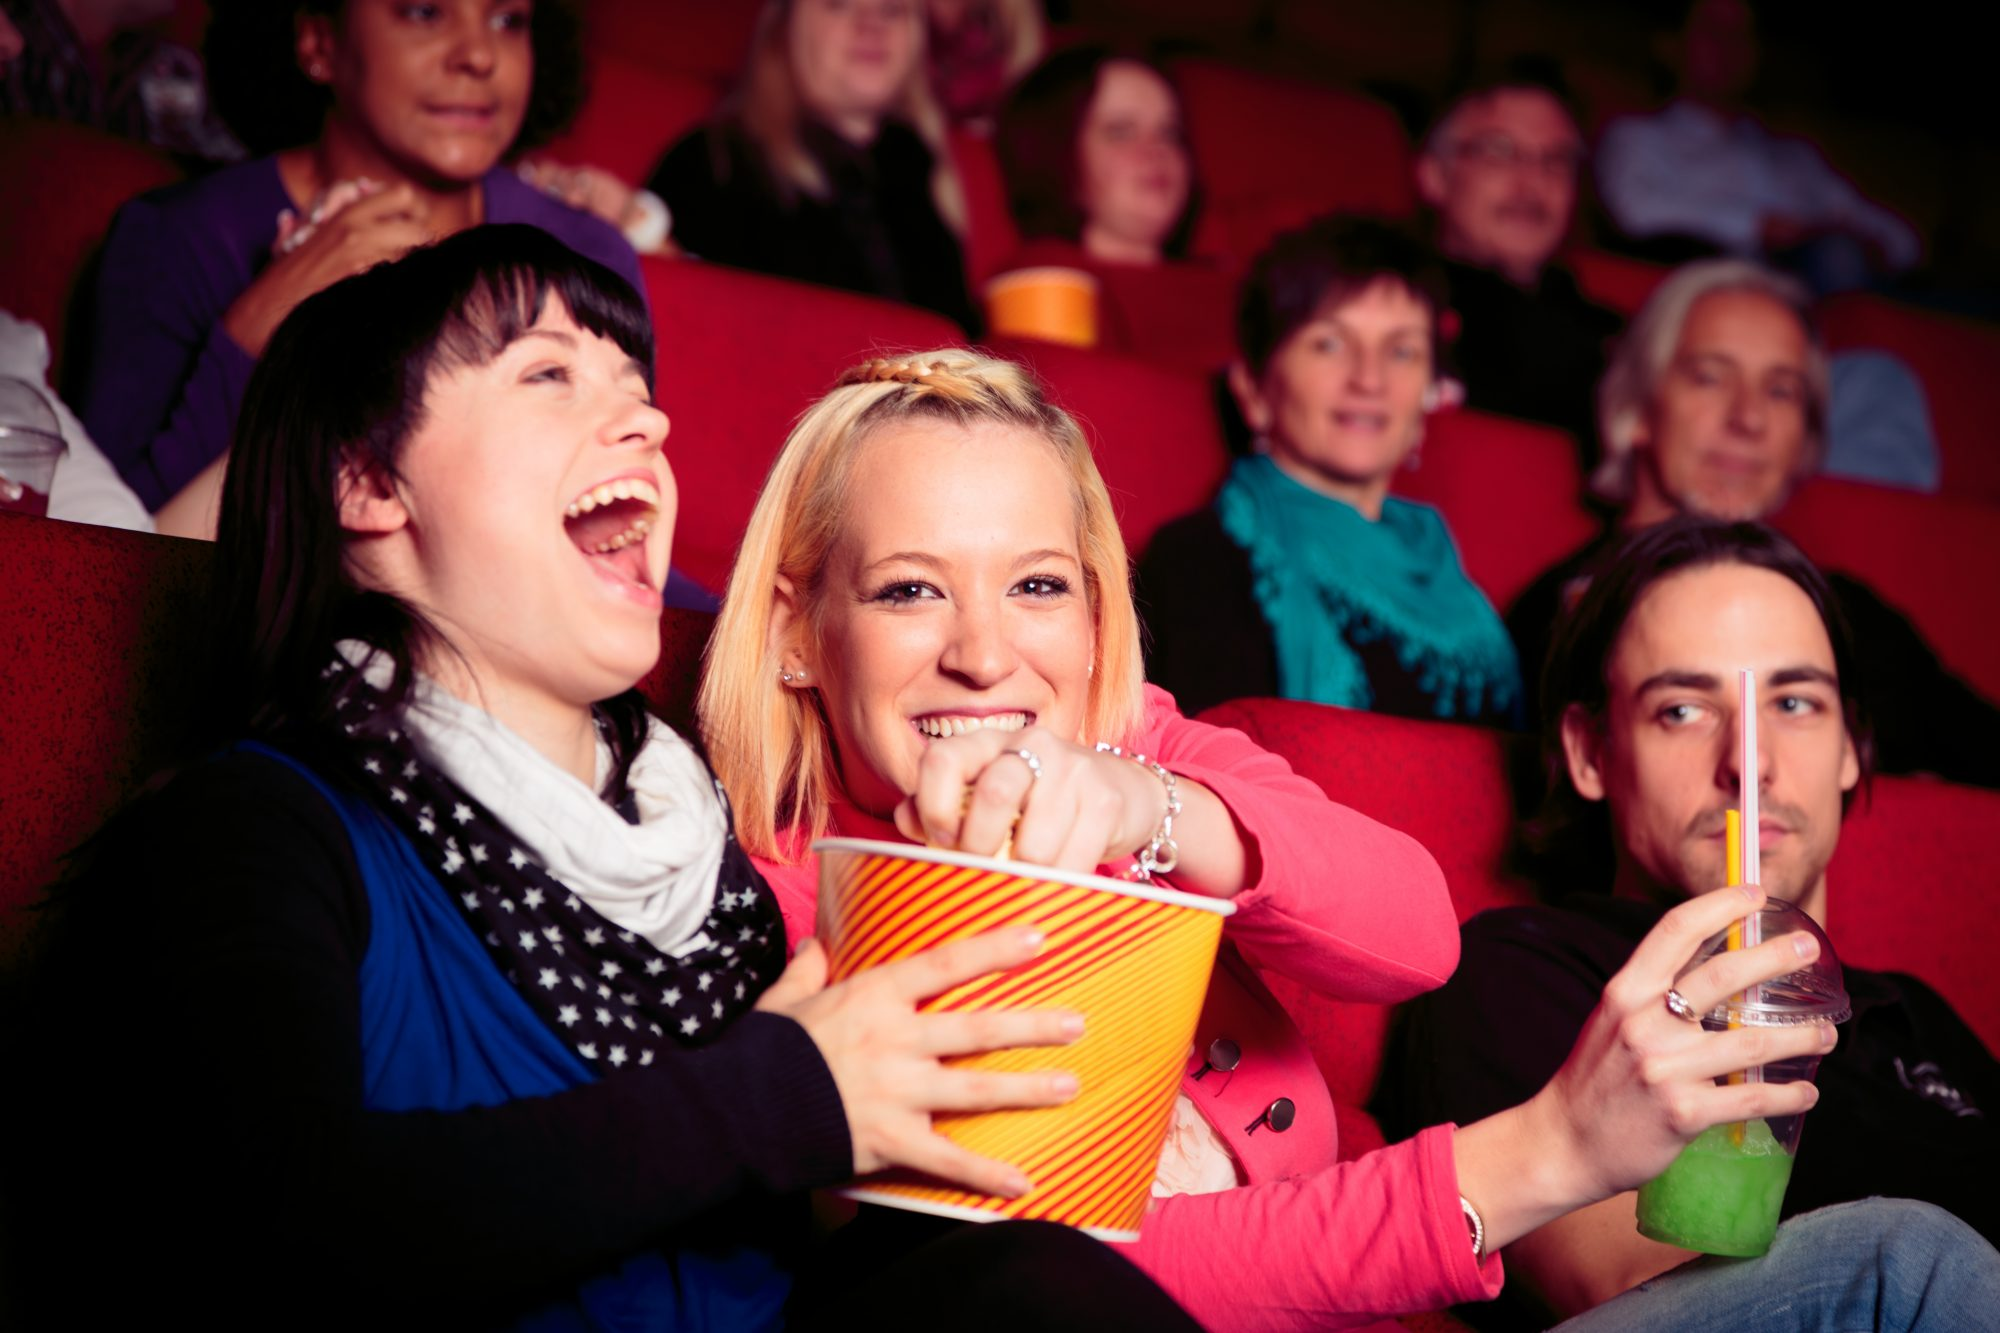 People at Movie Theater